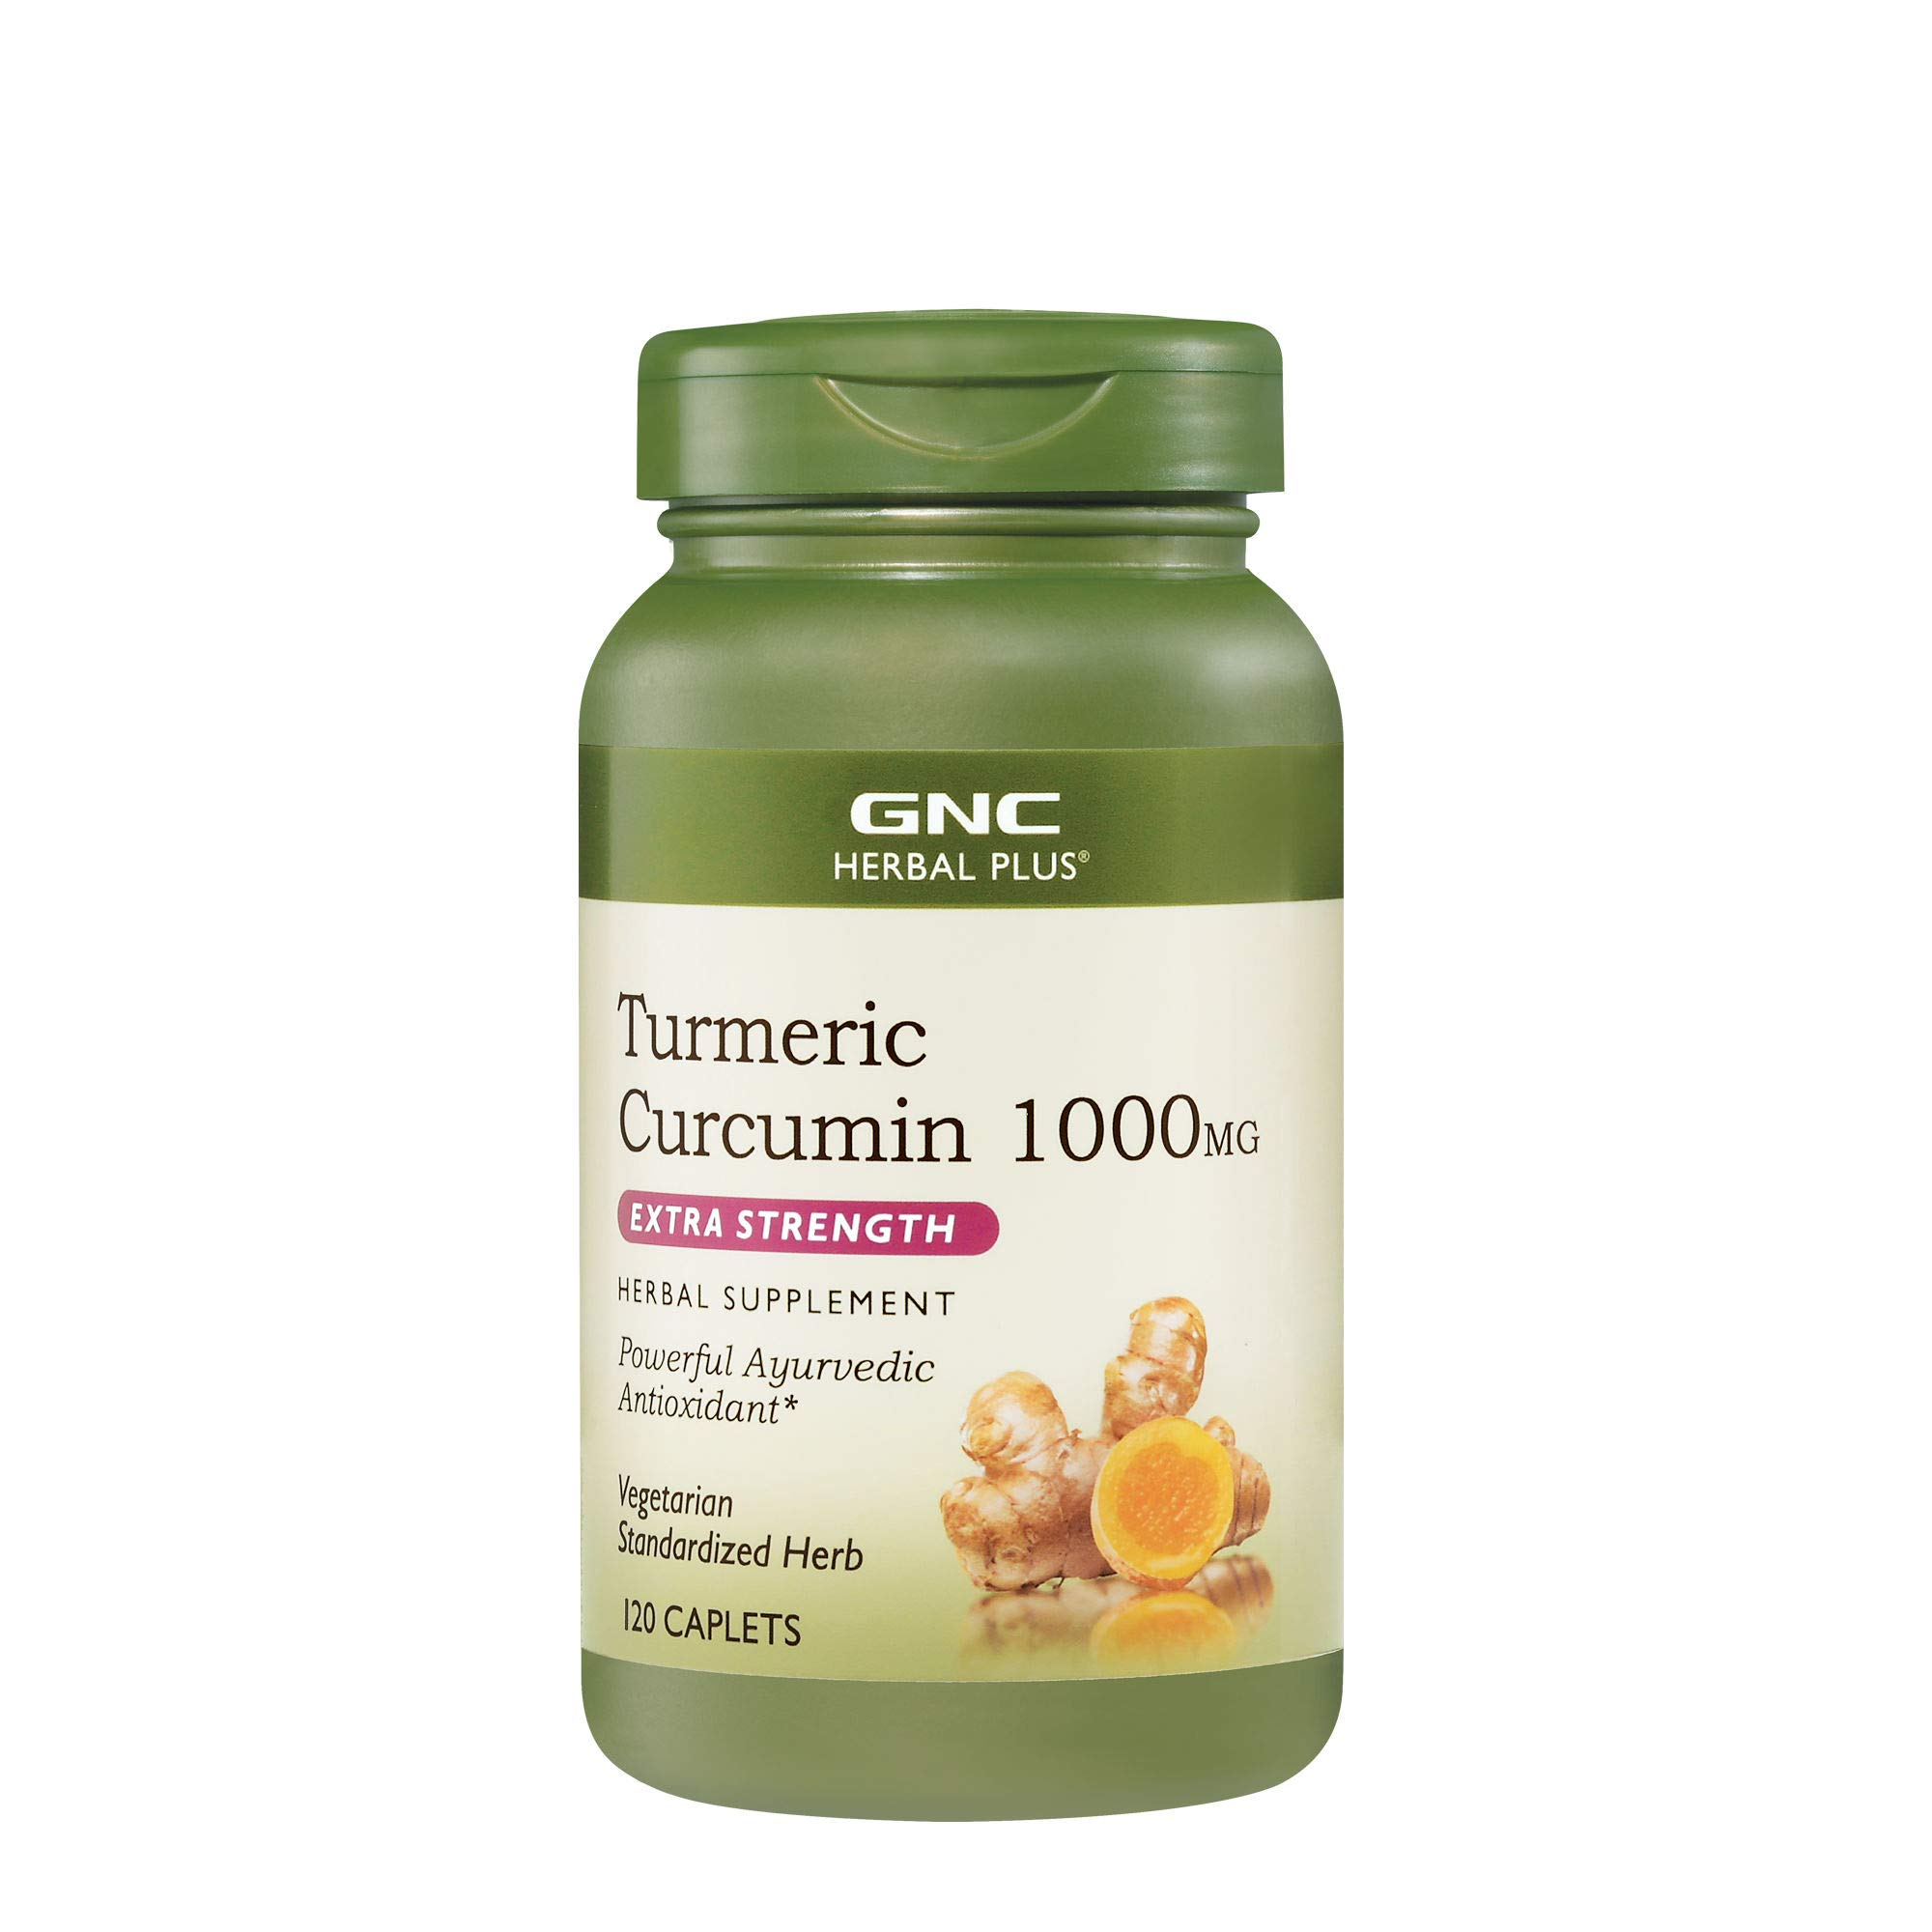 GNC Herbal Plus Turmeric Curcumin 1000mg Extra Strength, 120 Caplets, Powerful Ayurvedic Antioxdant